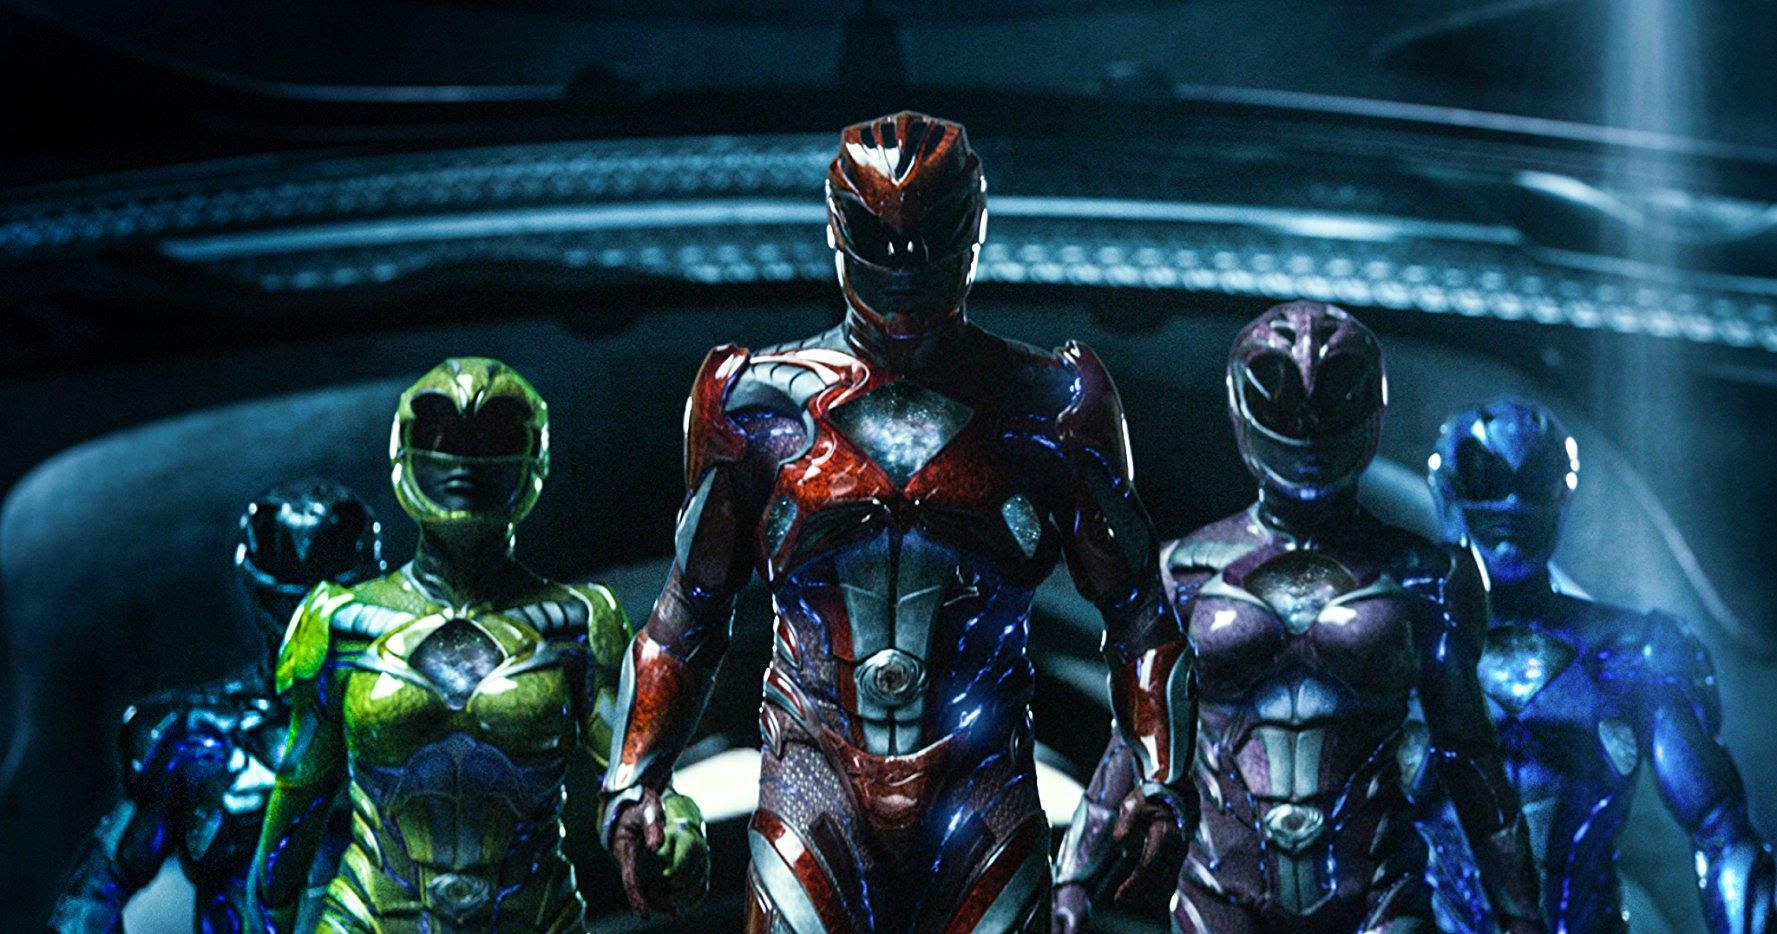 There's a New 'Power Rangers' Movie in Development | The Blemish